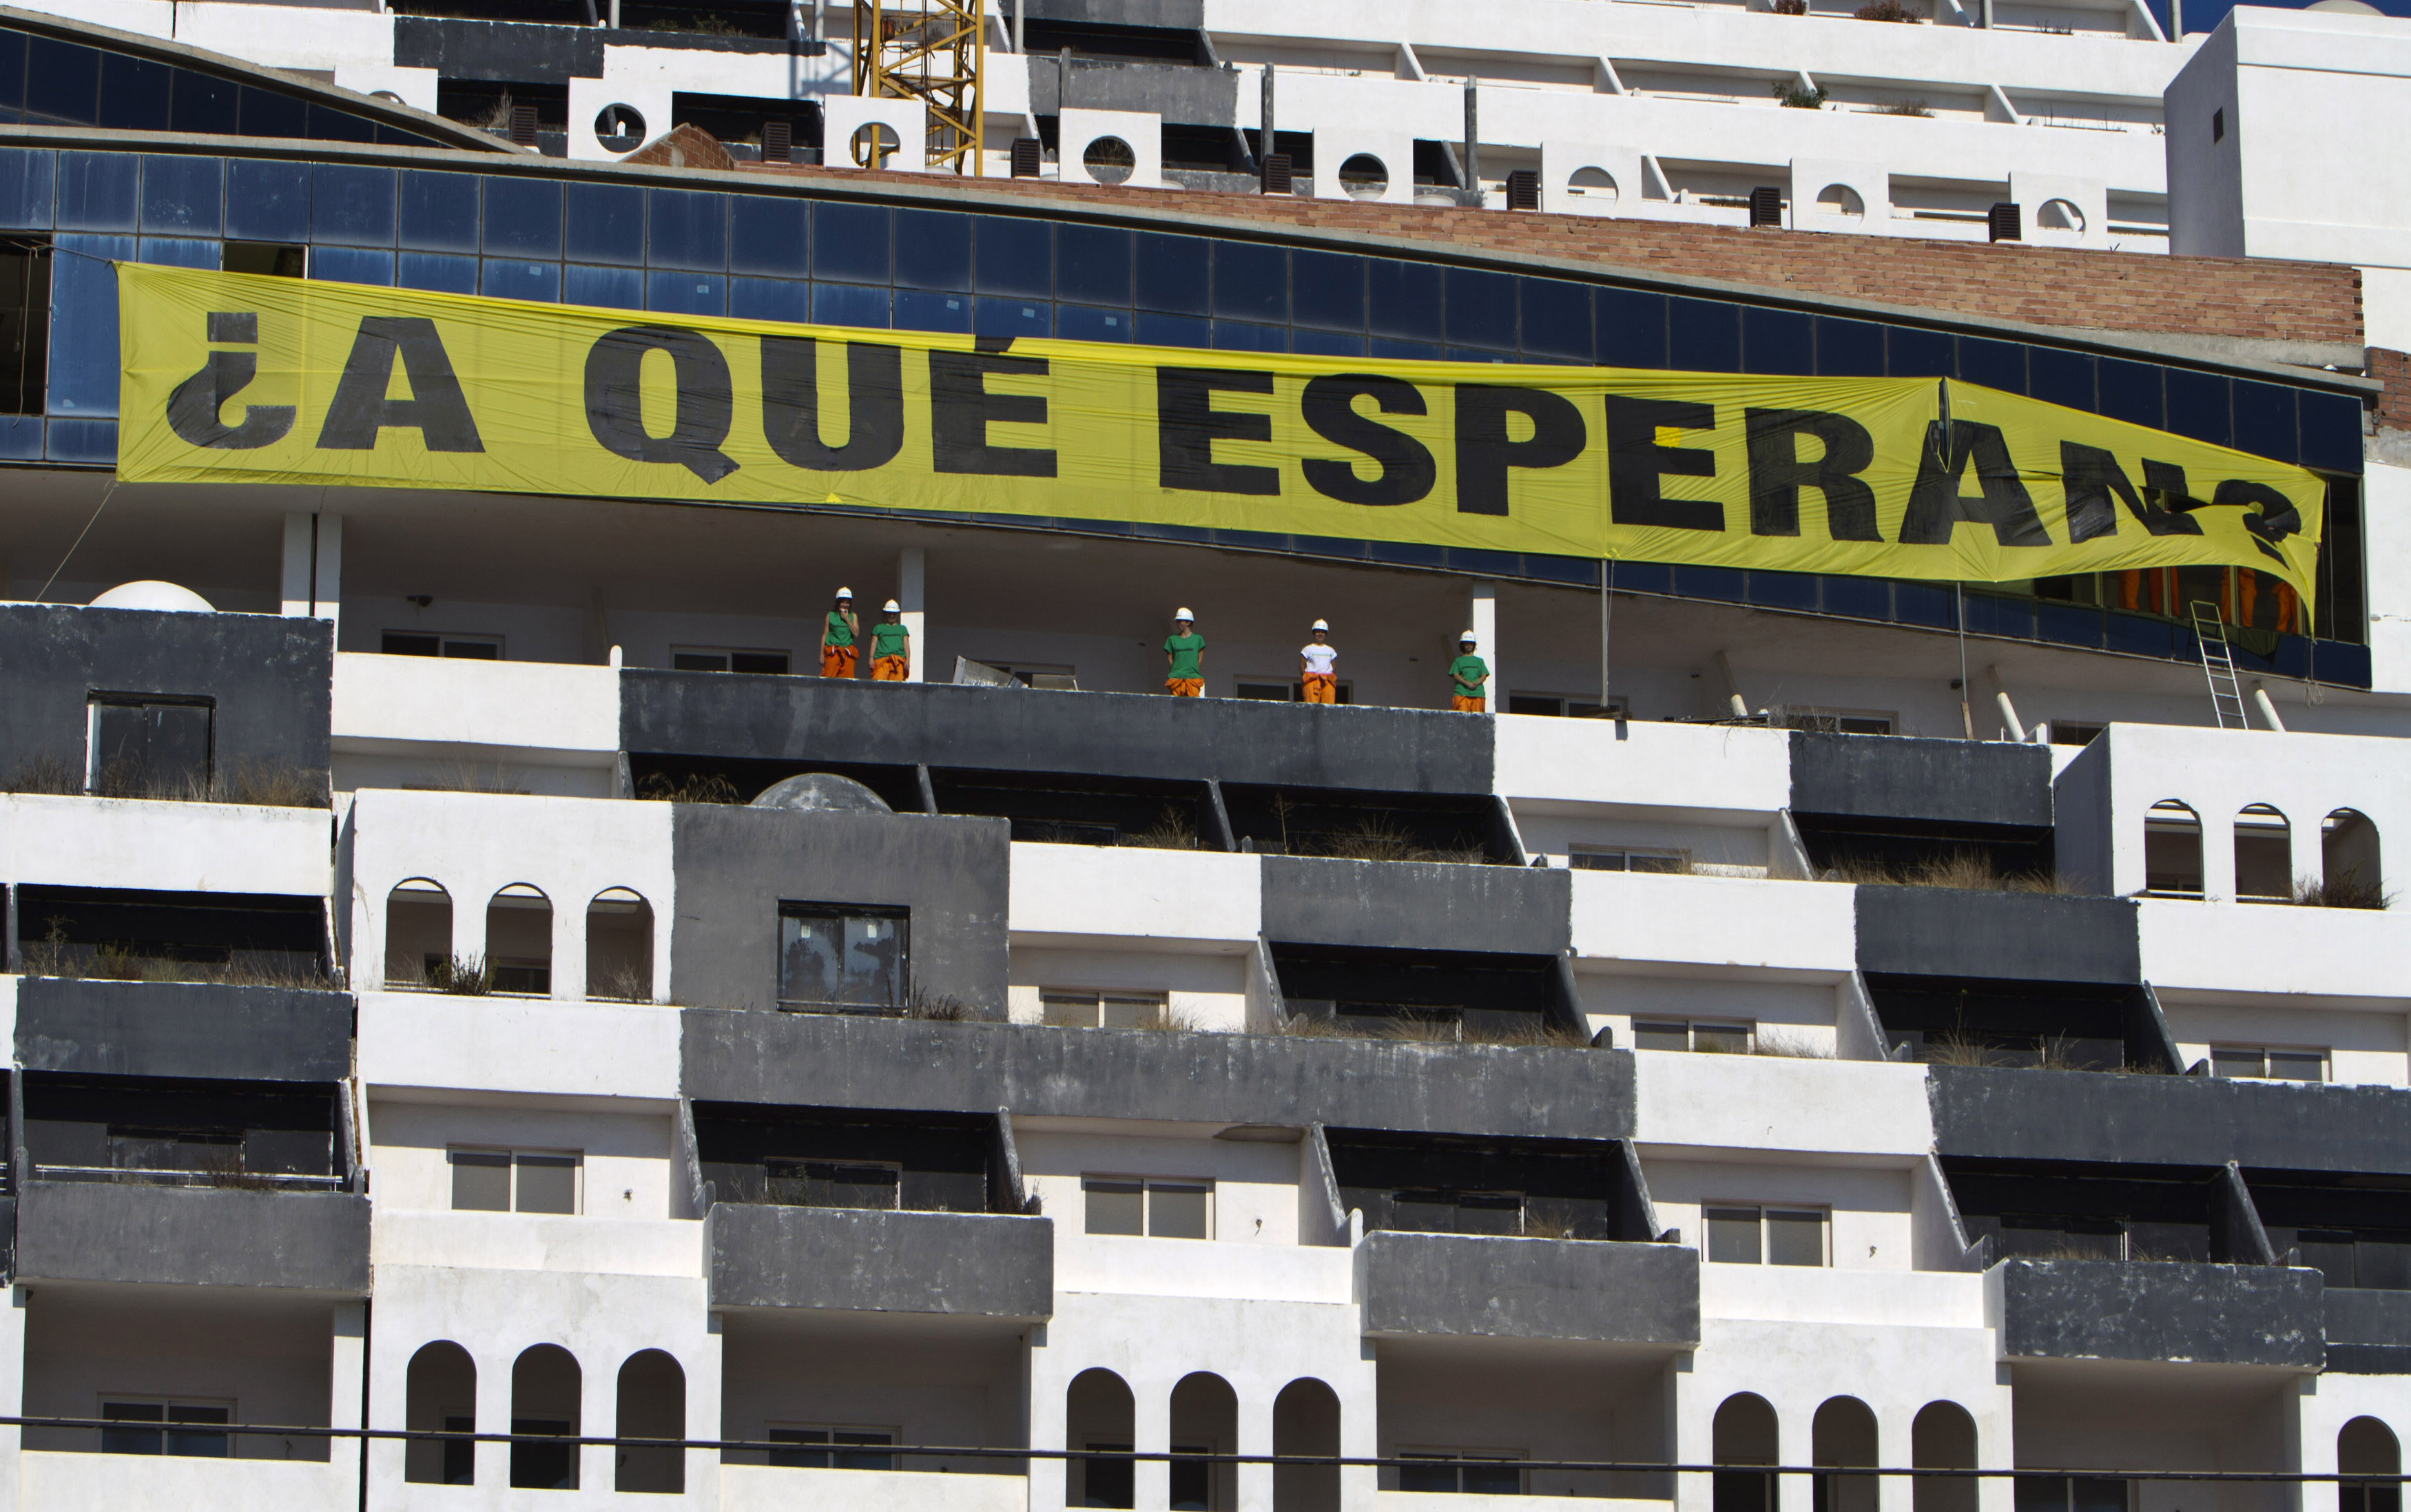 "Greenpeace activists stand under a banner reading ""What are they waiting for?"" in reference to the demolition of a hotel, after they occupied the construction site in El Algarrobico beach in Carboneras, southeastern Spain, September 5, 2011. Greenpeace say the construction of the hotel was ruled illegal due to a coastal protection law and Greenpeace members occupied an area of the construction site to demand the local government the immediate demolition of the building. REUTERS/Francisco Bonilla (SPAIN - Tags: ENVIRONMENT CIVIL UNREST BUSINESS CONSTRUCTION) - RTR2QTM7"